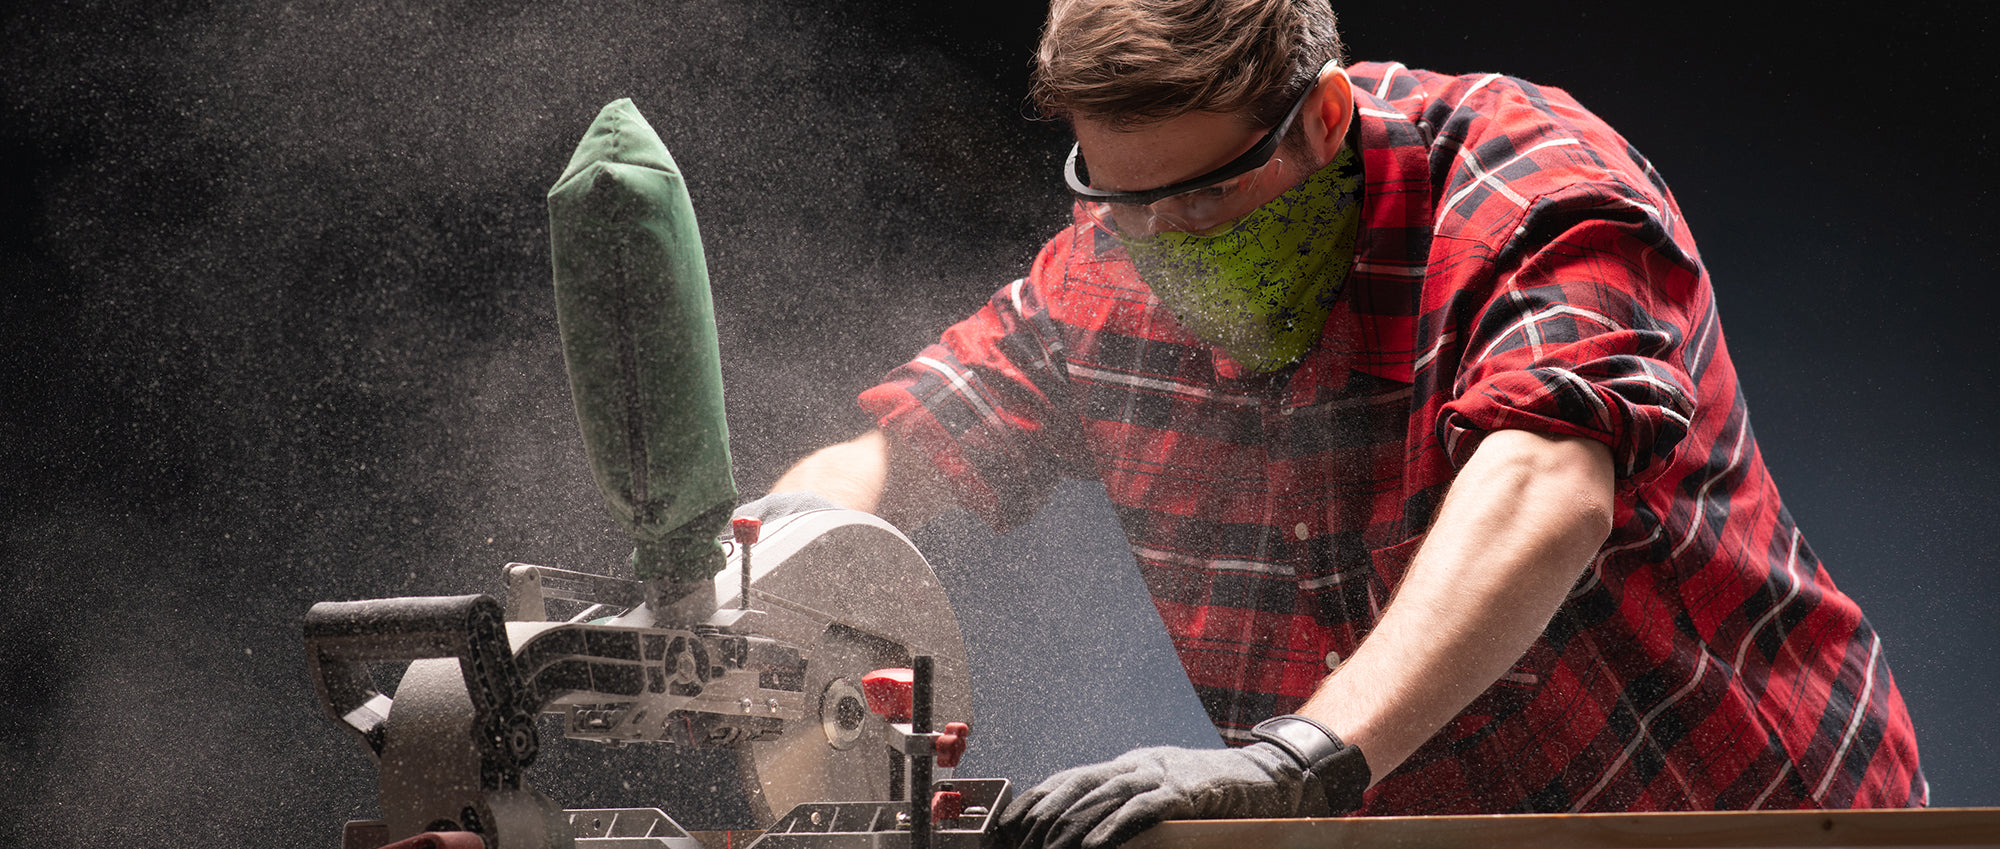 Man using saw while wearing a Face Guard